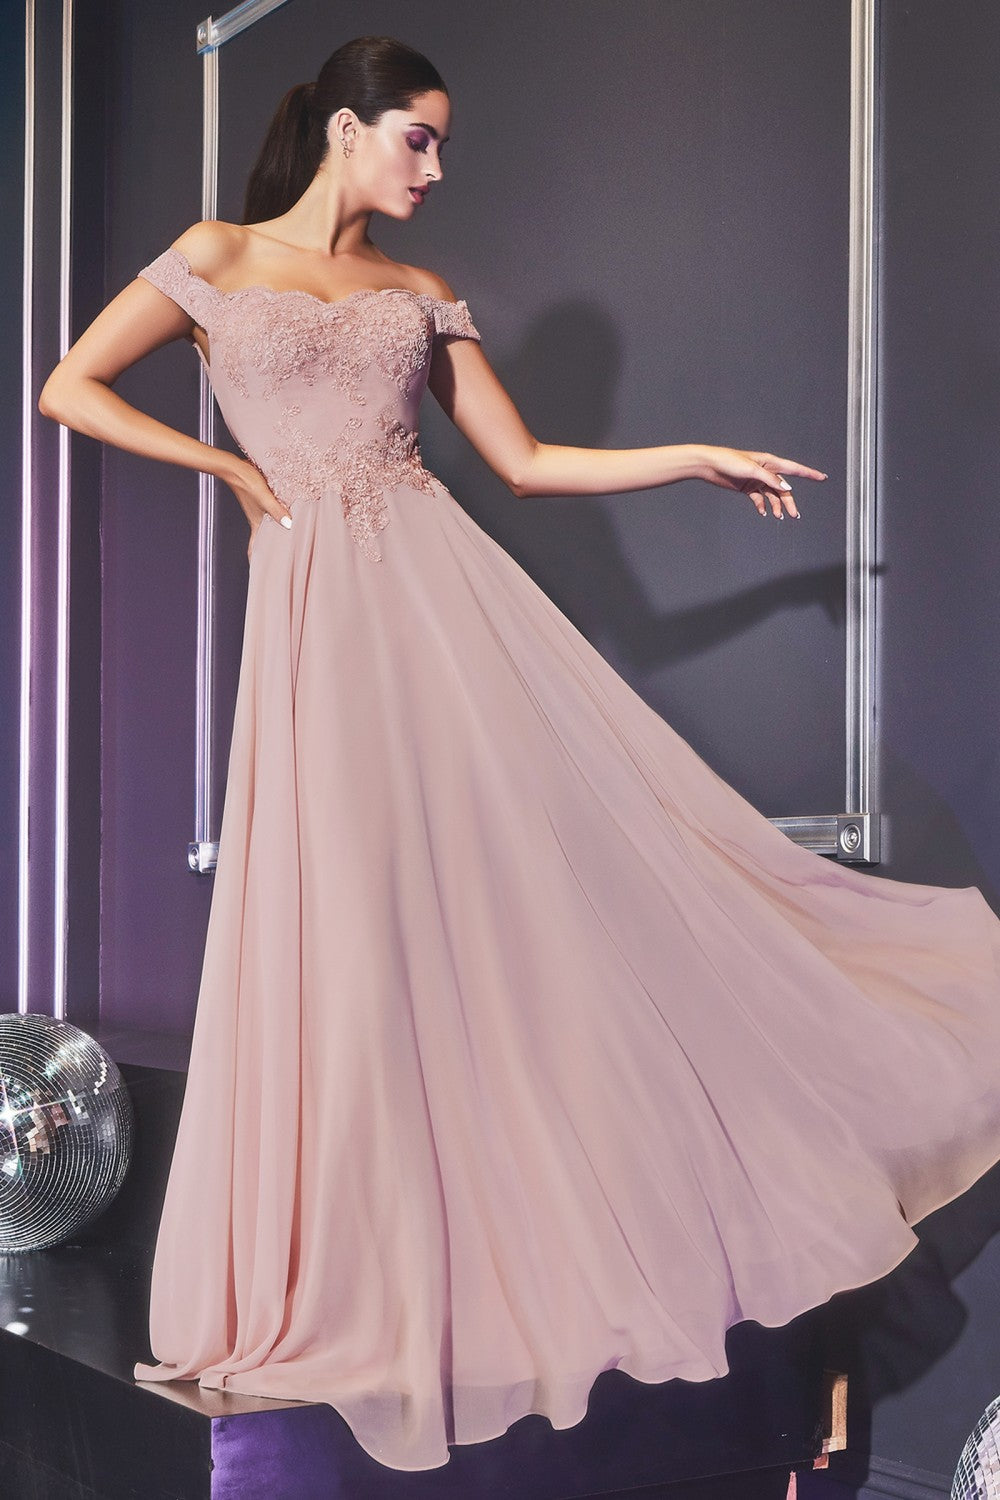 Dina Bridesmaid Dress in Mauve Off the Shoulder Chiffon Skirt C7258KR-Mauve   SAMPLE IN STORE in white